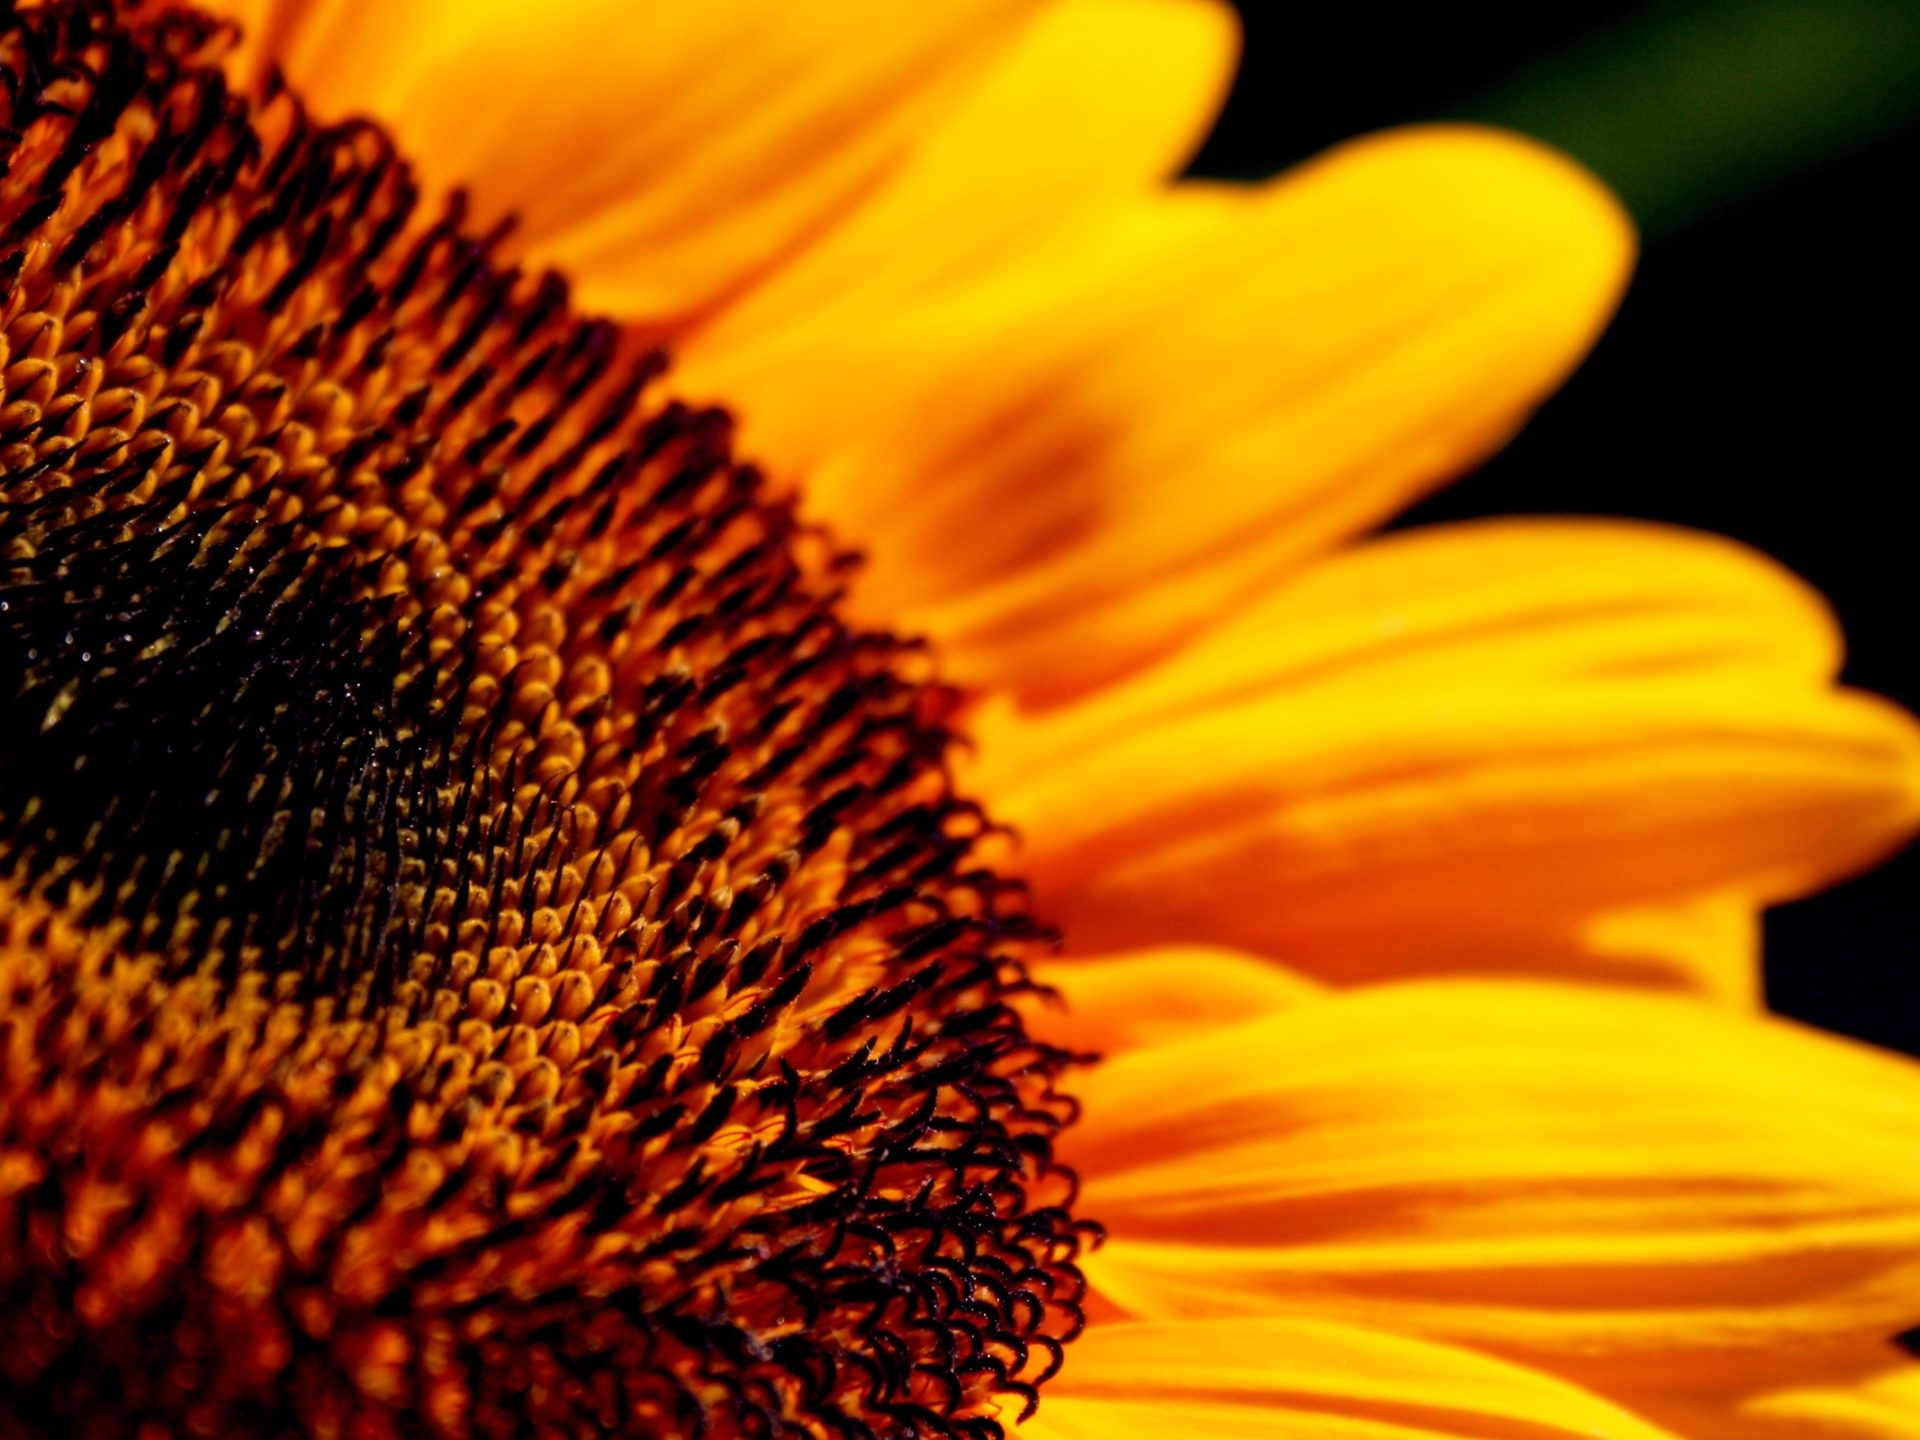 Flowers are one of life's most simple pleasures, representing beauty in its purest, most flawless form. Sunflower Flower Close Up High Definition 2560x1600